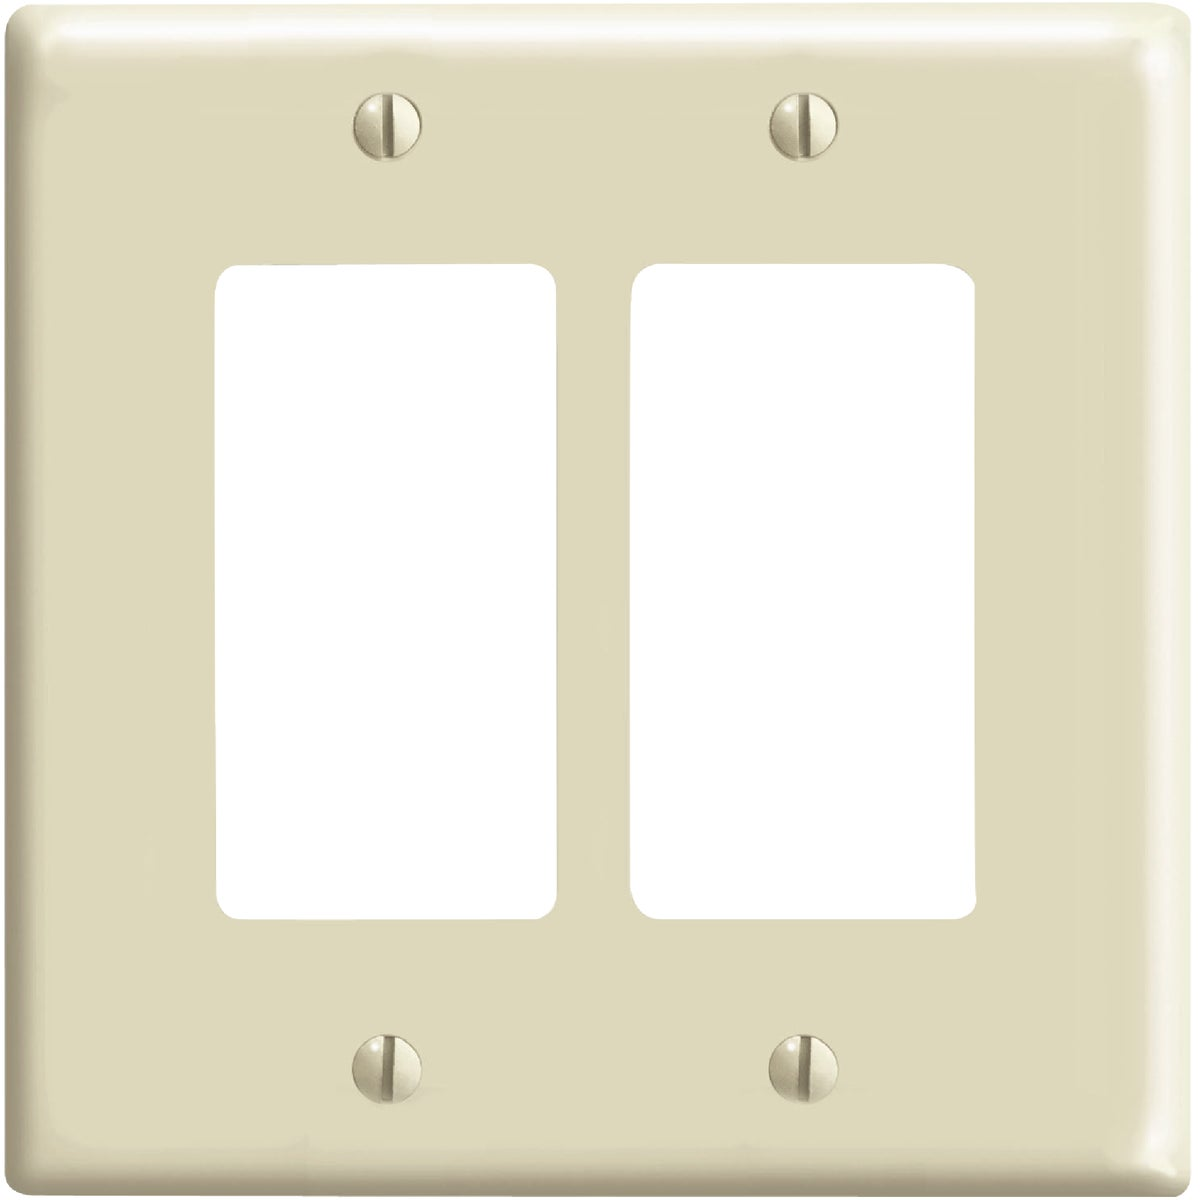 IV 2-GFI WALL PLATE - 80609I by Leviton Mfg Co